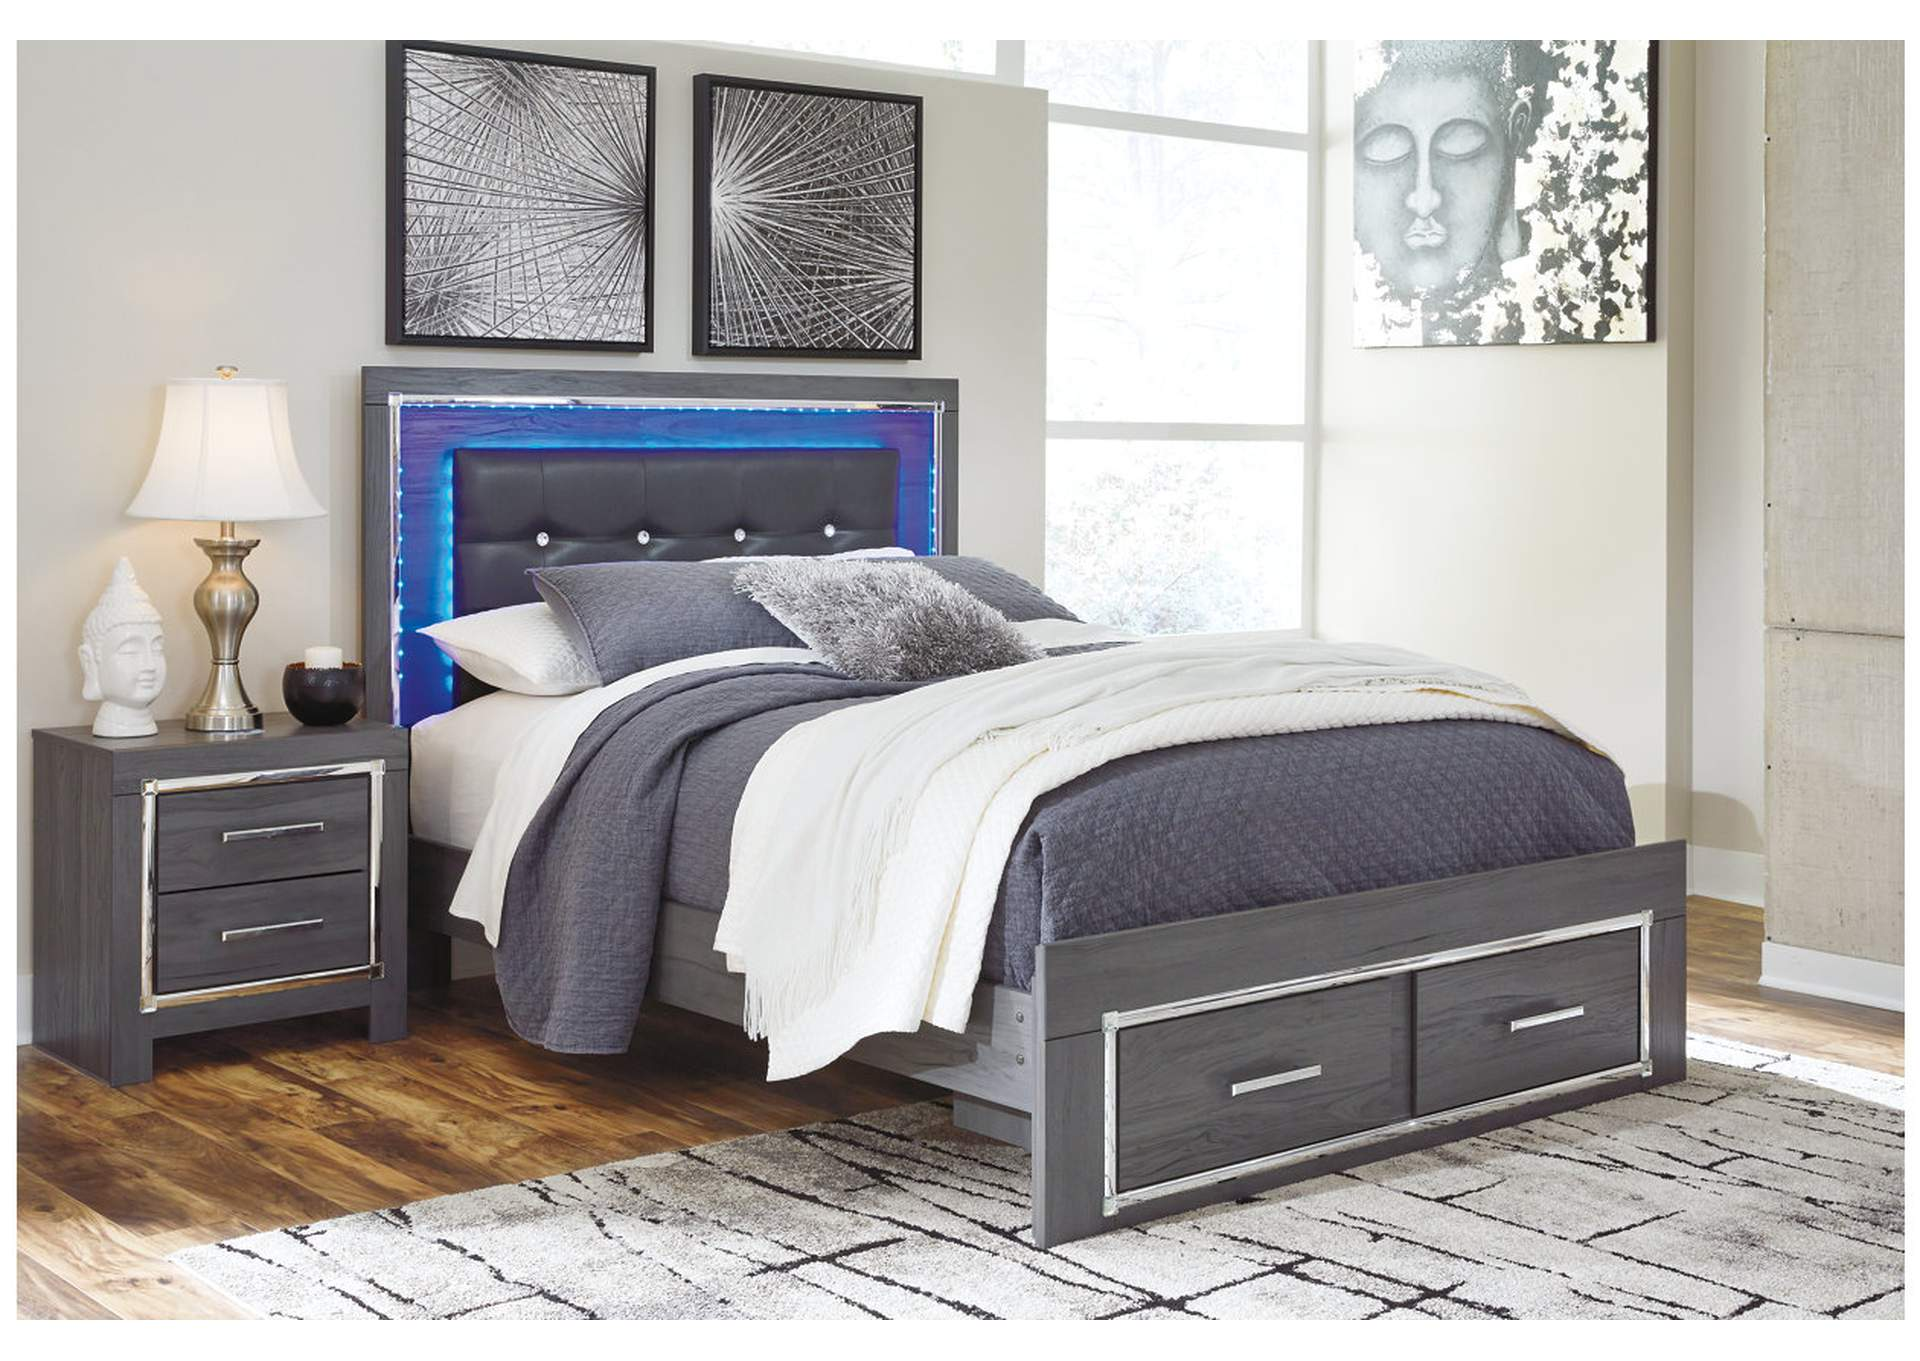 Lodanna Gray Full Storage Bed,Signature Design By Ashley